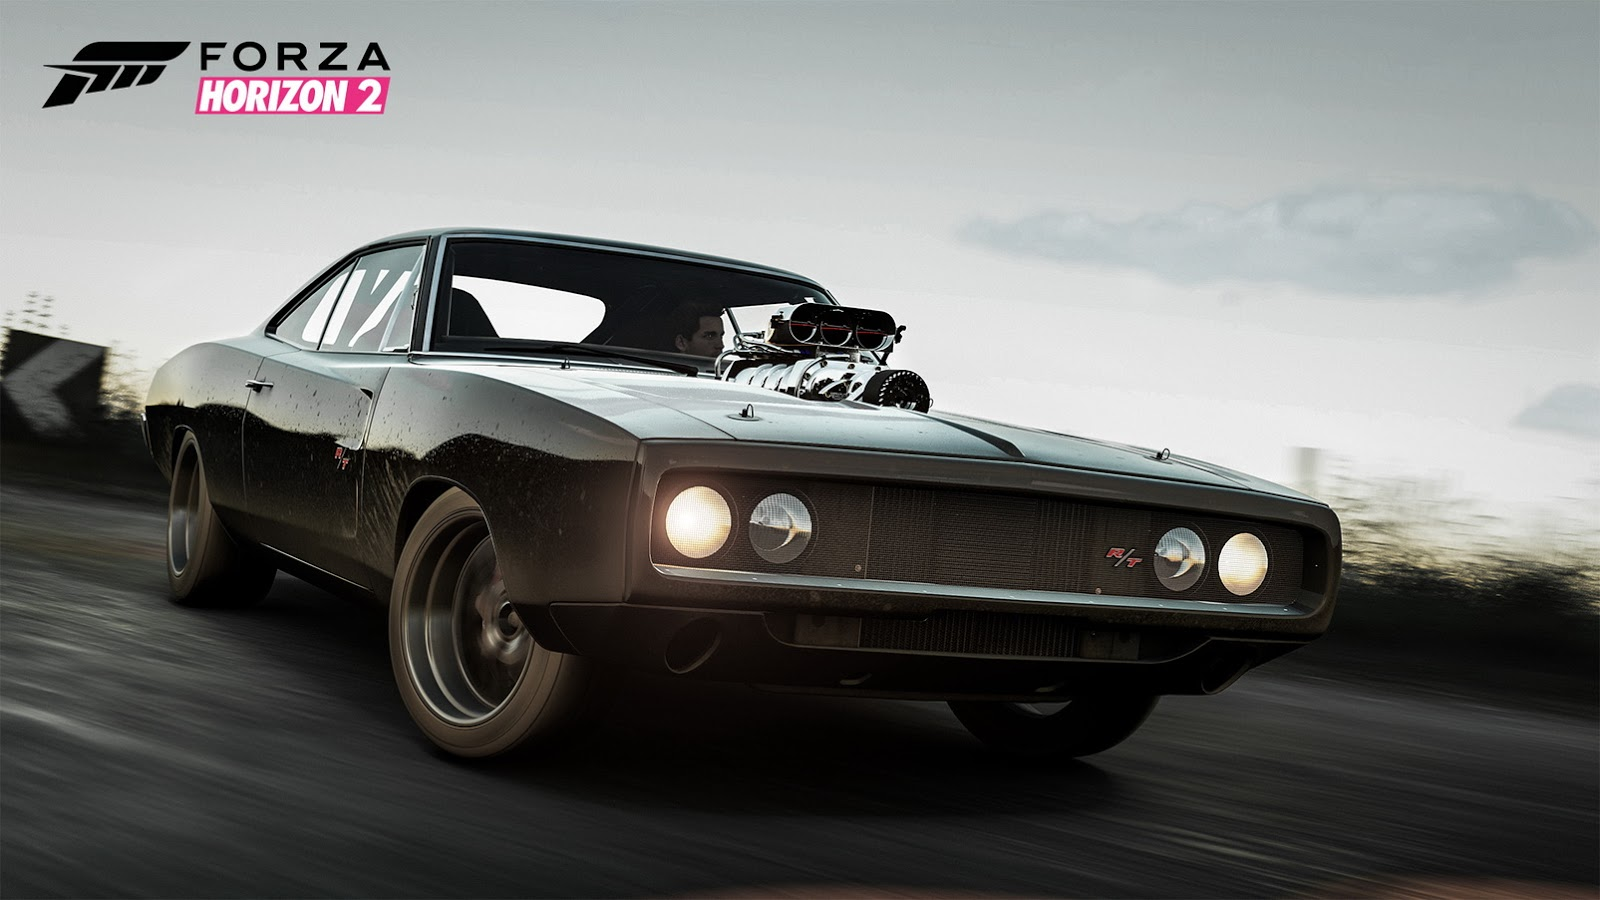 fast and furious 7 will spawn eight special edition cars in forza horizon 2 autoevolution - Fast And Furious Cars